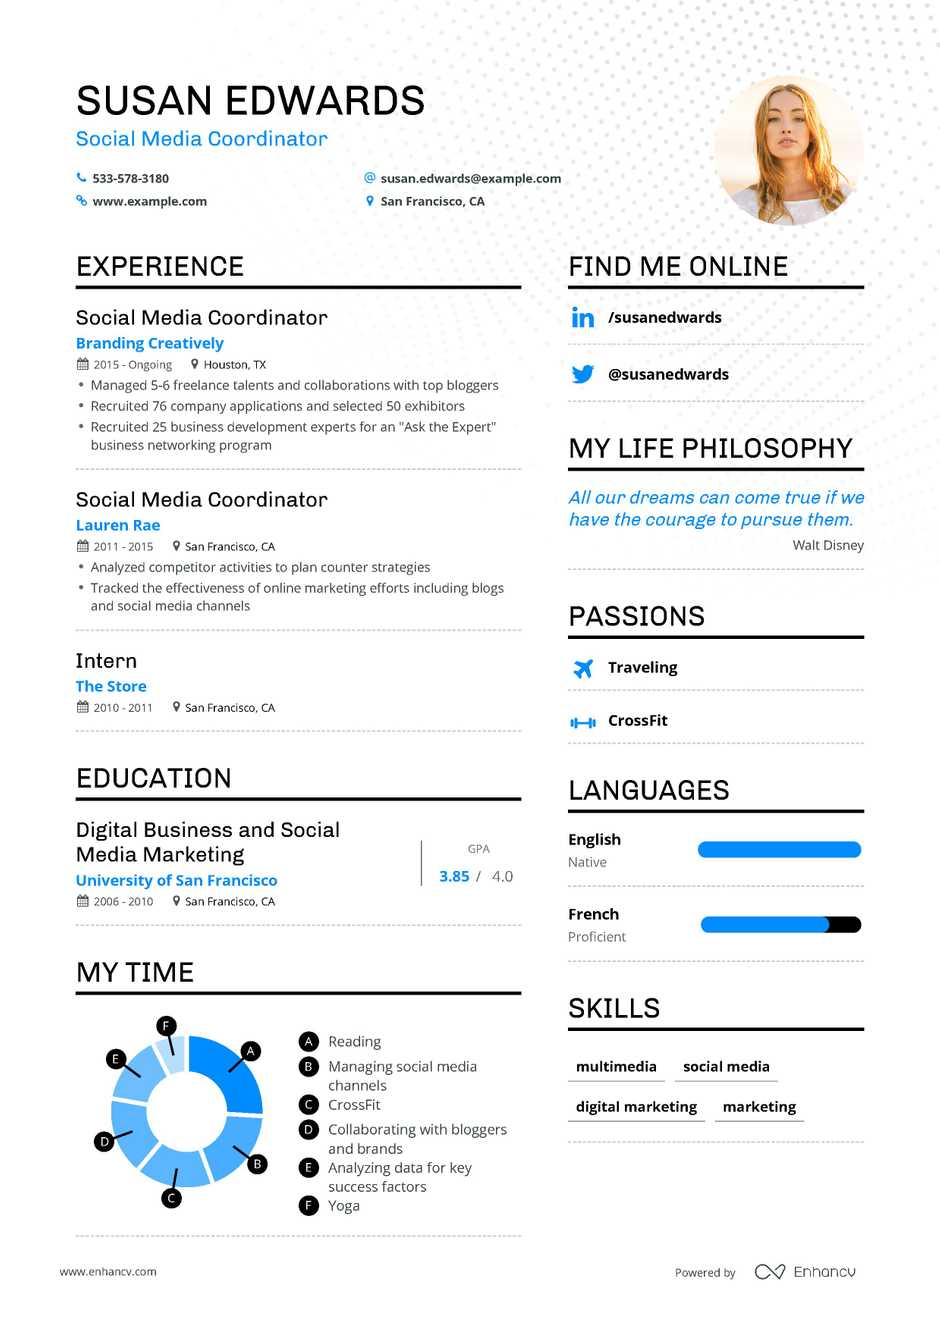 Digital Media Resume.Social Media Coordinator Resume Example And Guide For 2019